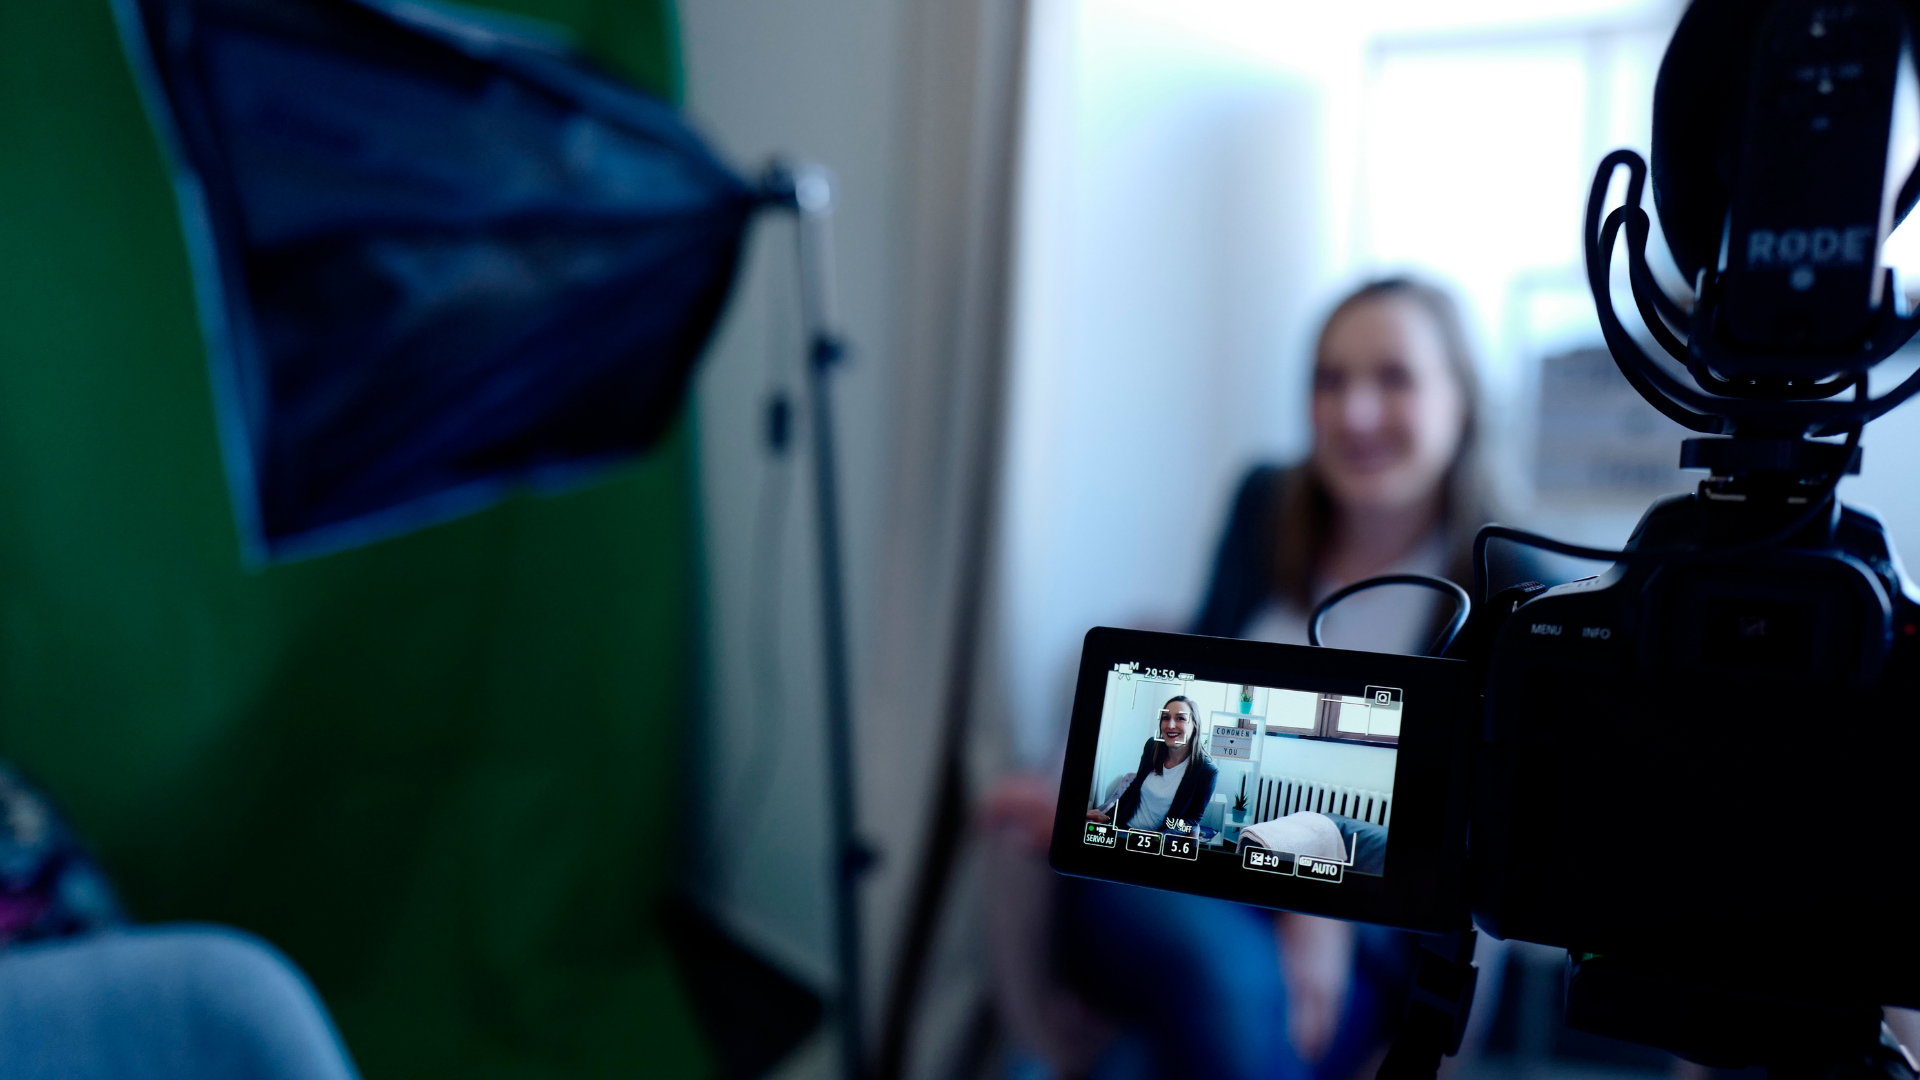 8 Proven Video Marketing Best Practices To Elevate Your Business